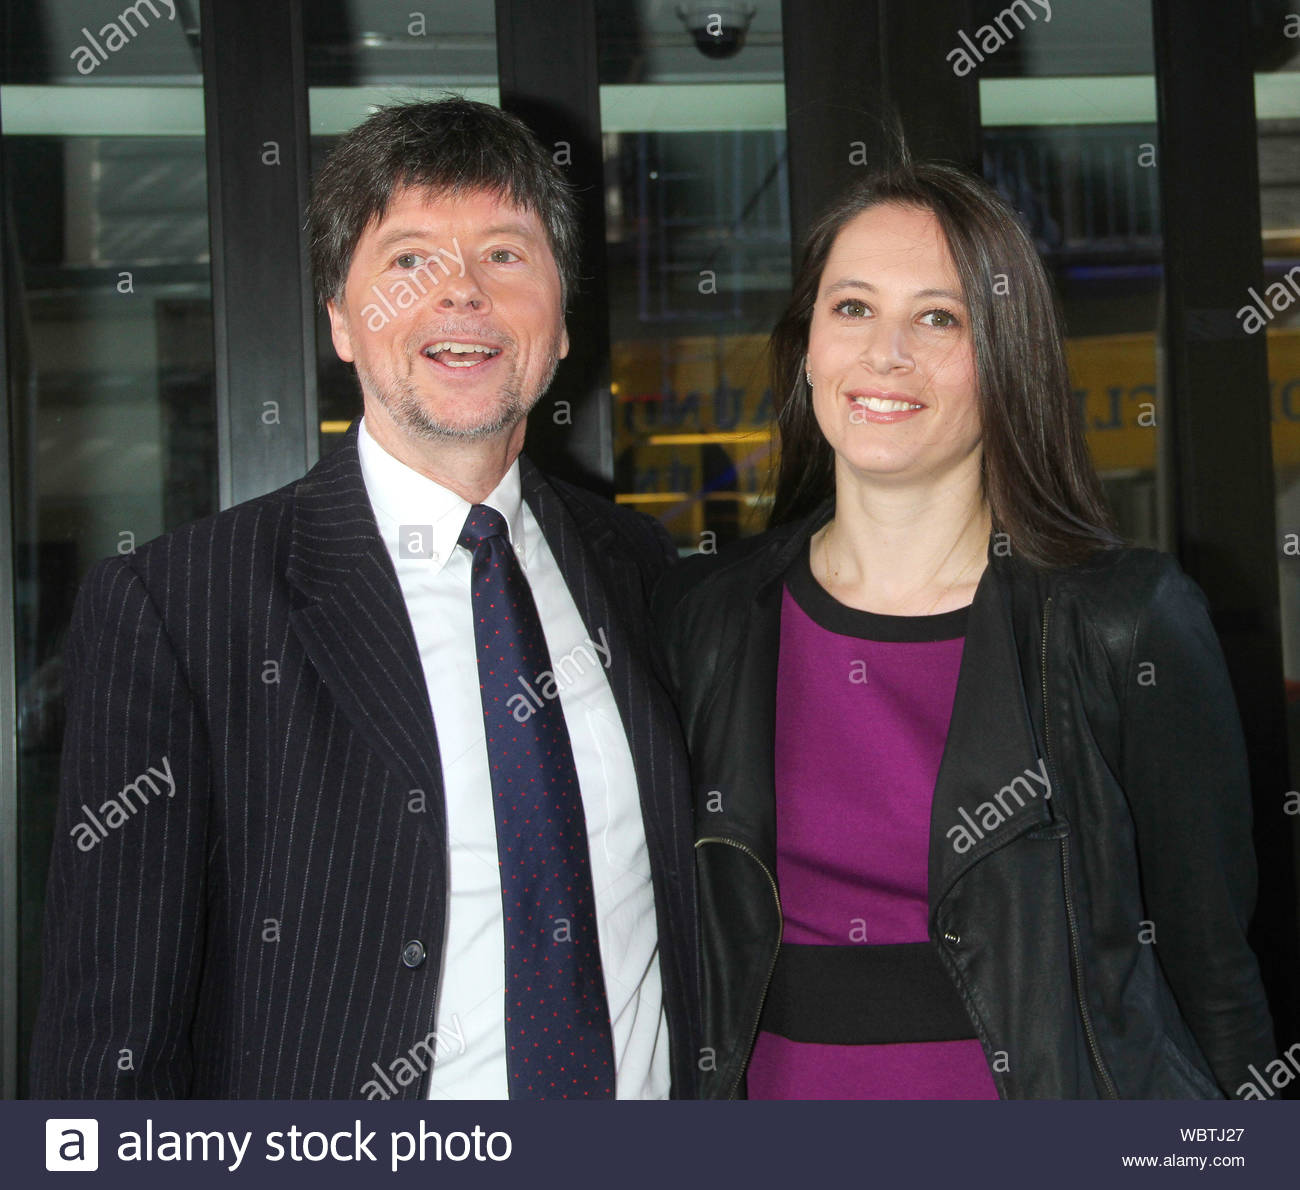 New York Ny Ken Burns And Sarah Burns Are All Smiles At Good Day Ny In New York Akm Gsi April 16 2013 Stock Photo Alamy